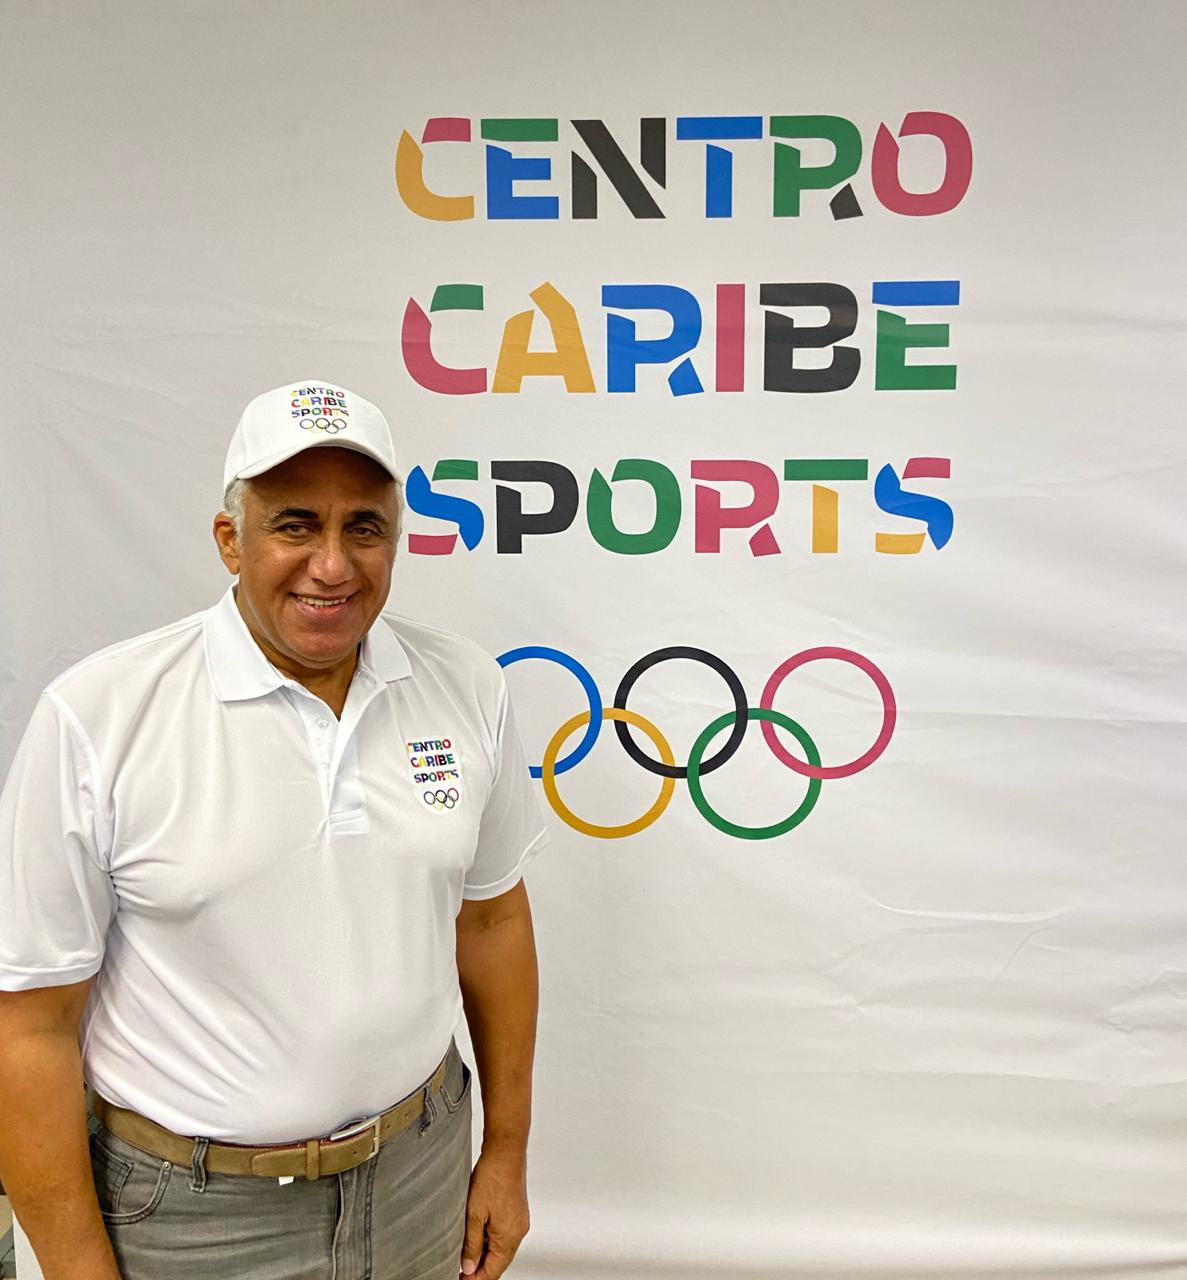 Luis Mejia made the announcement of the two bidding cities ©Centro Caribe Sports